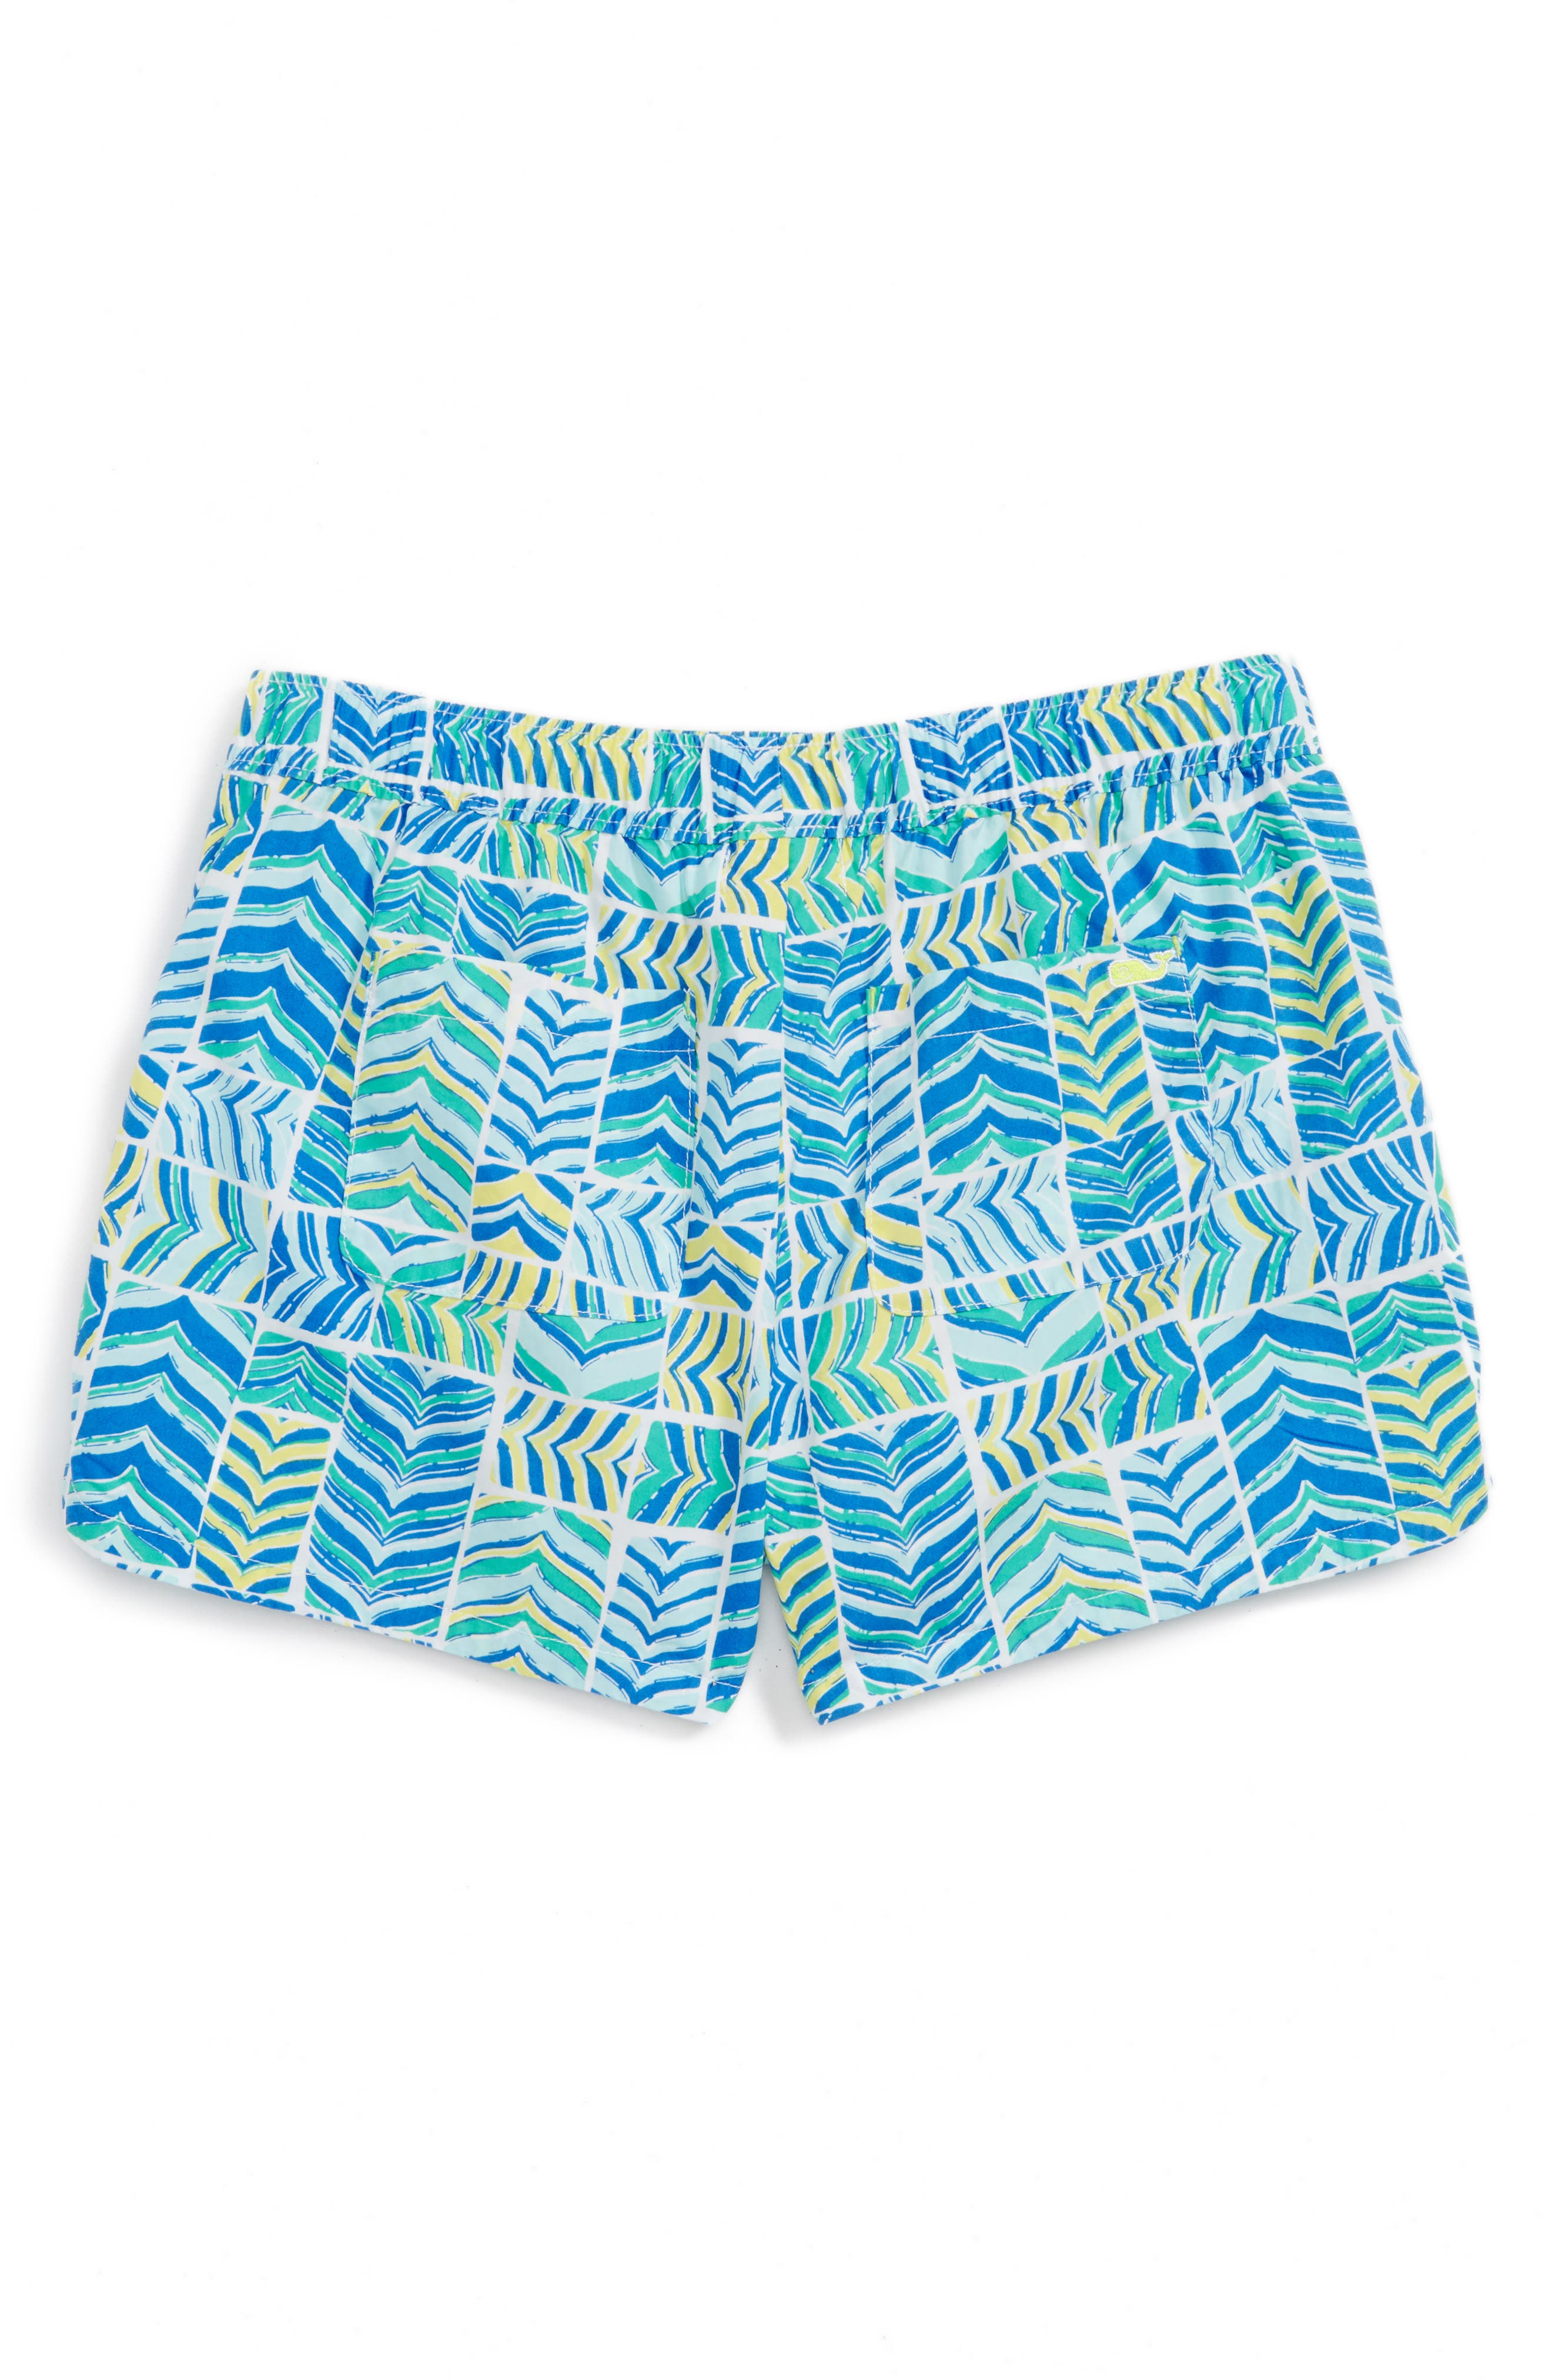 Whaletail Patchwork Shorts,                             Main thumbnail 1, color,                             474